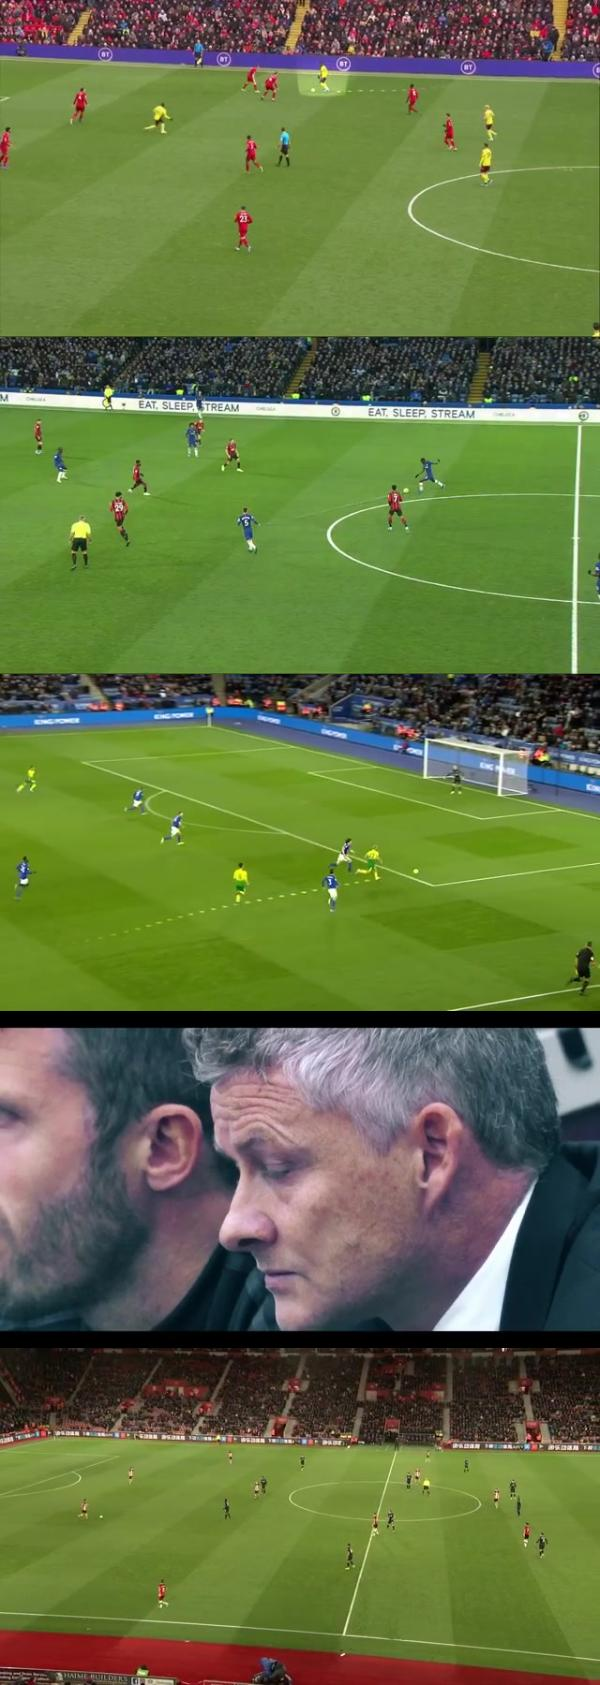 130160355_match-of-the-day-2019-12-14-aac-mp4-mobile.jpg